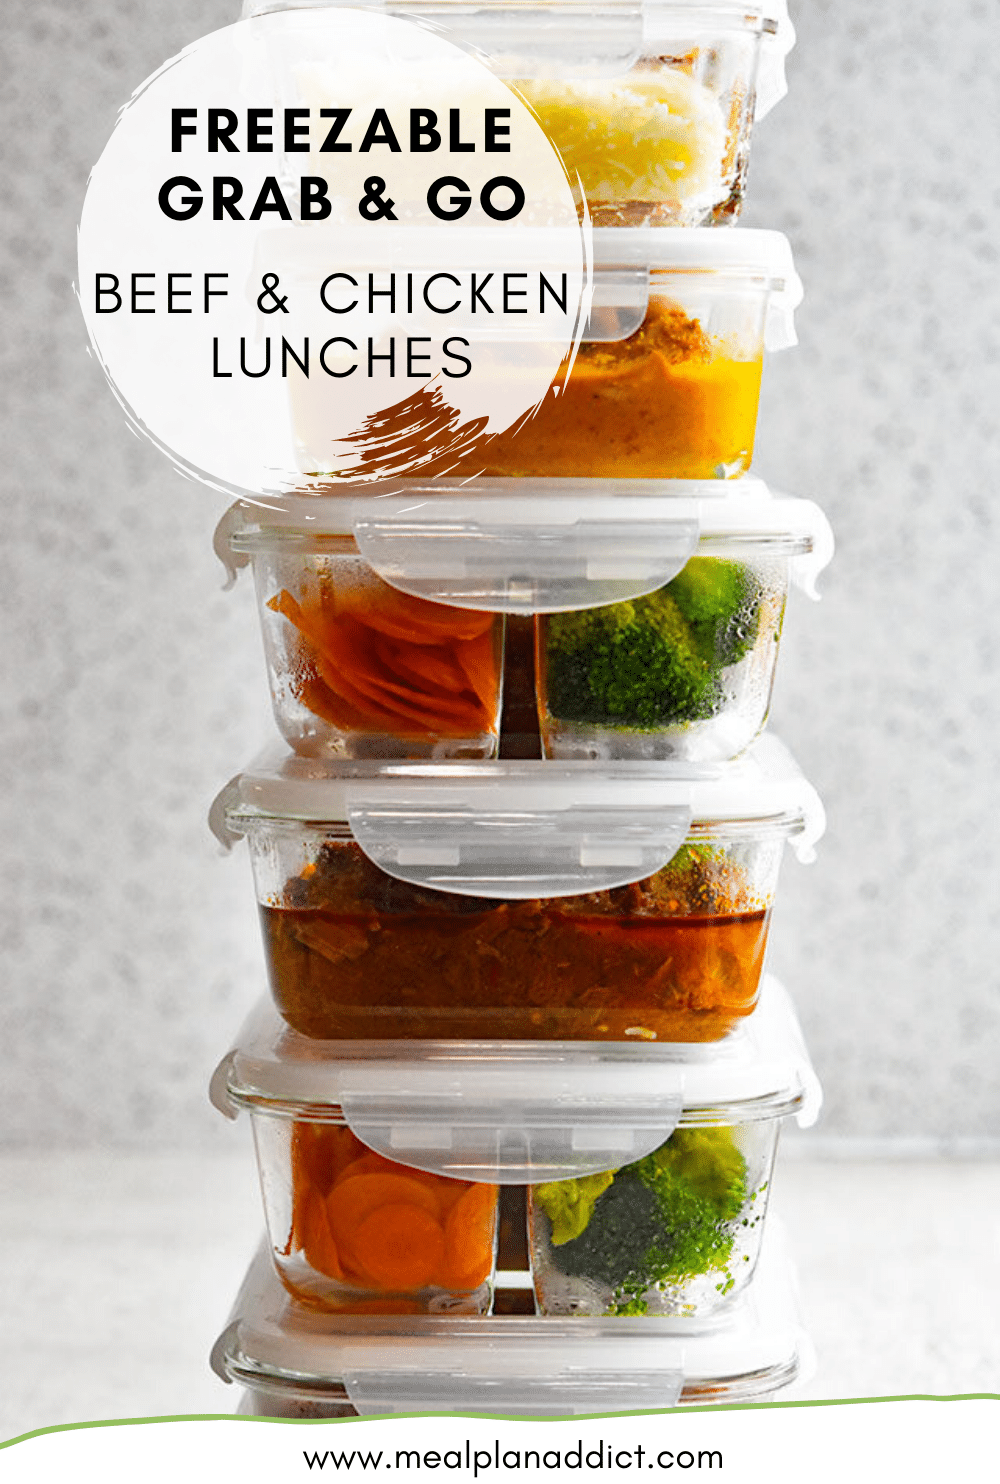 Freezable Grab & Go Beef & Chicken Lunches